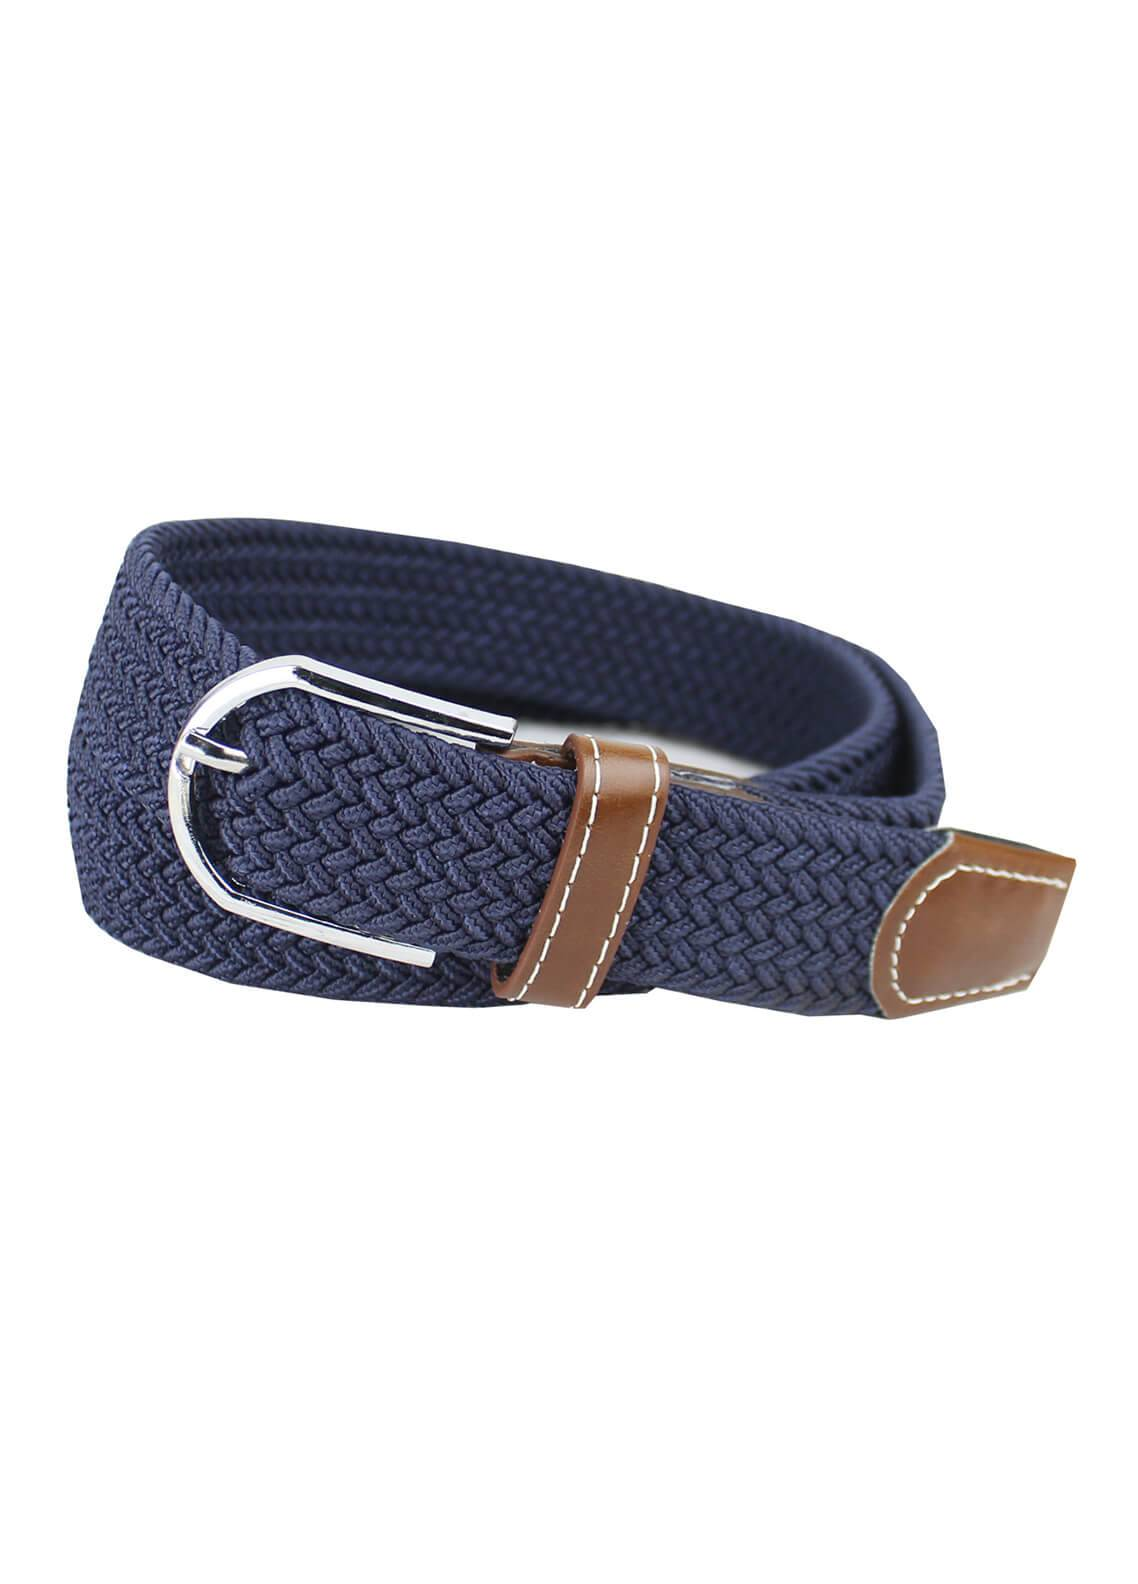 Shahzeb Saeed Textured Leather Men Belts BELT-141 Navy Blue - Casual Accessories